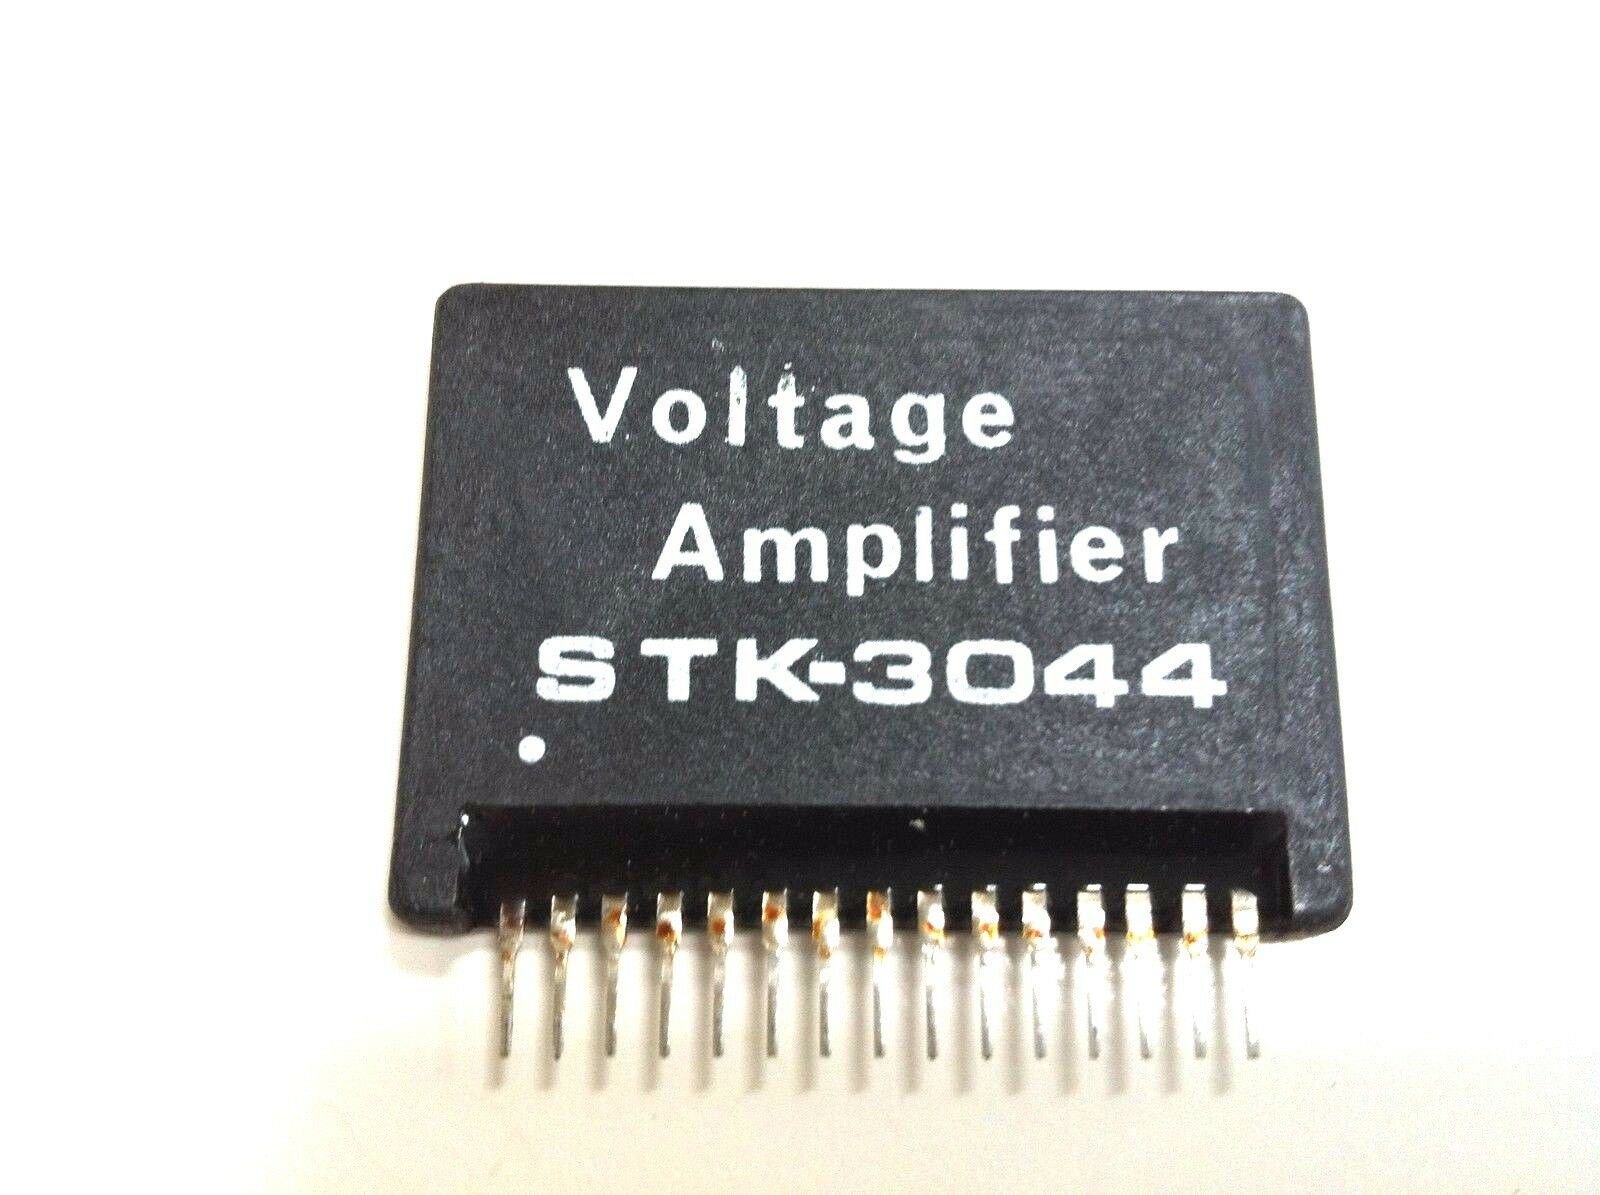 Stk3044 2 Channel Af Power Amplifier Heat Sink Compound By Sanyo Lm380 25 Watt 1 Of See More